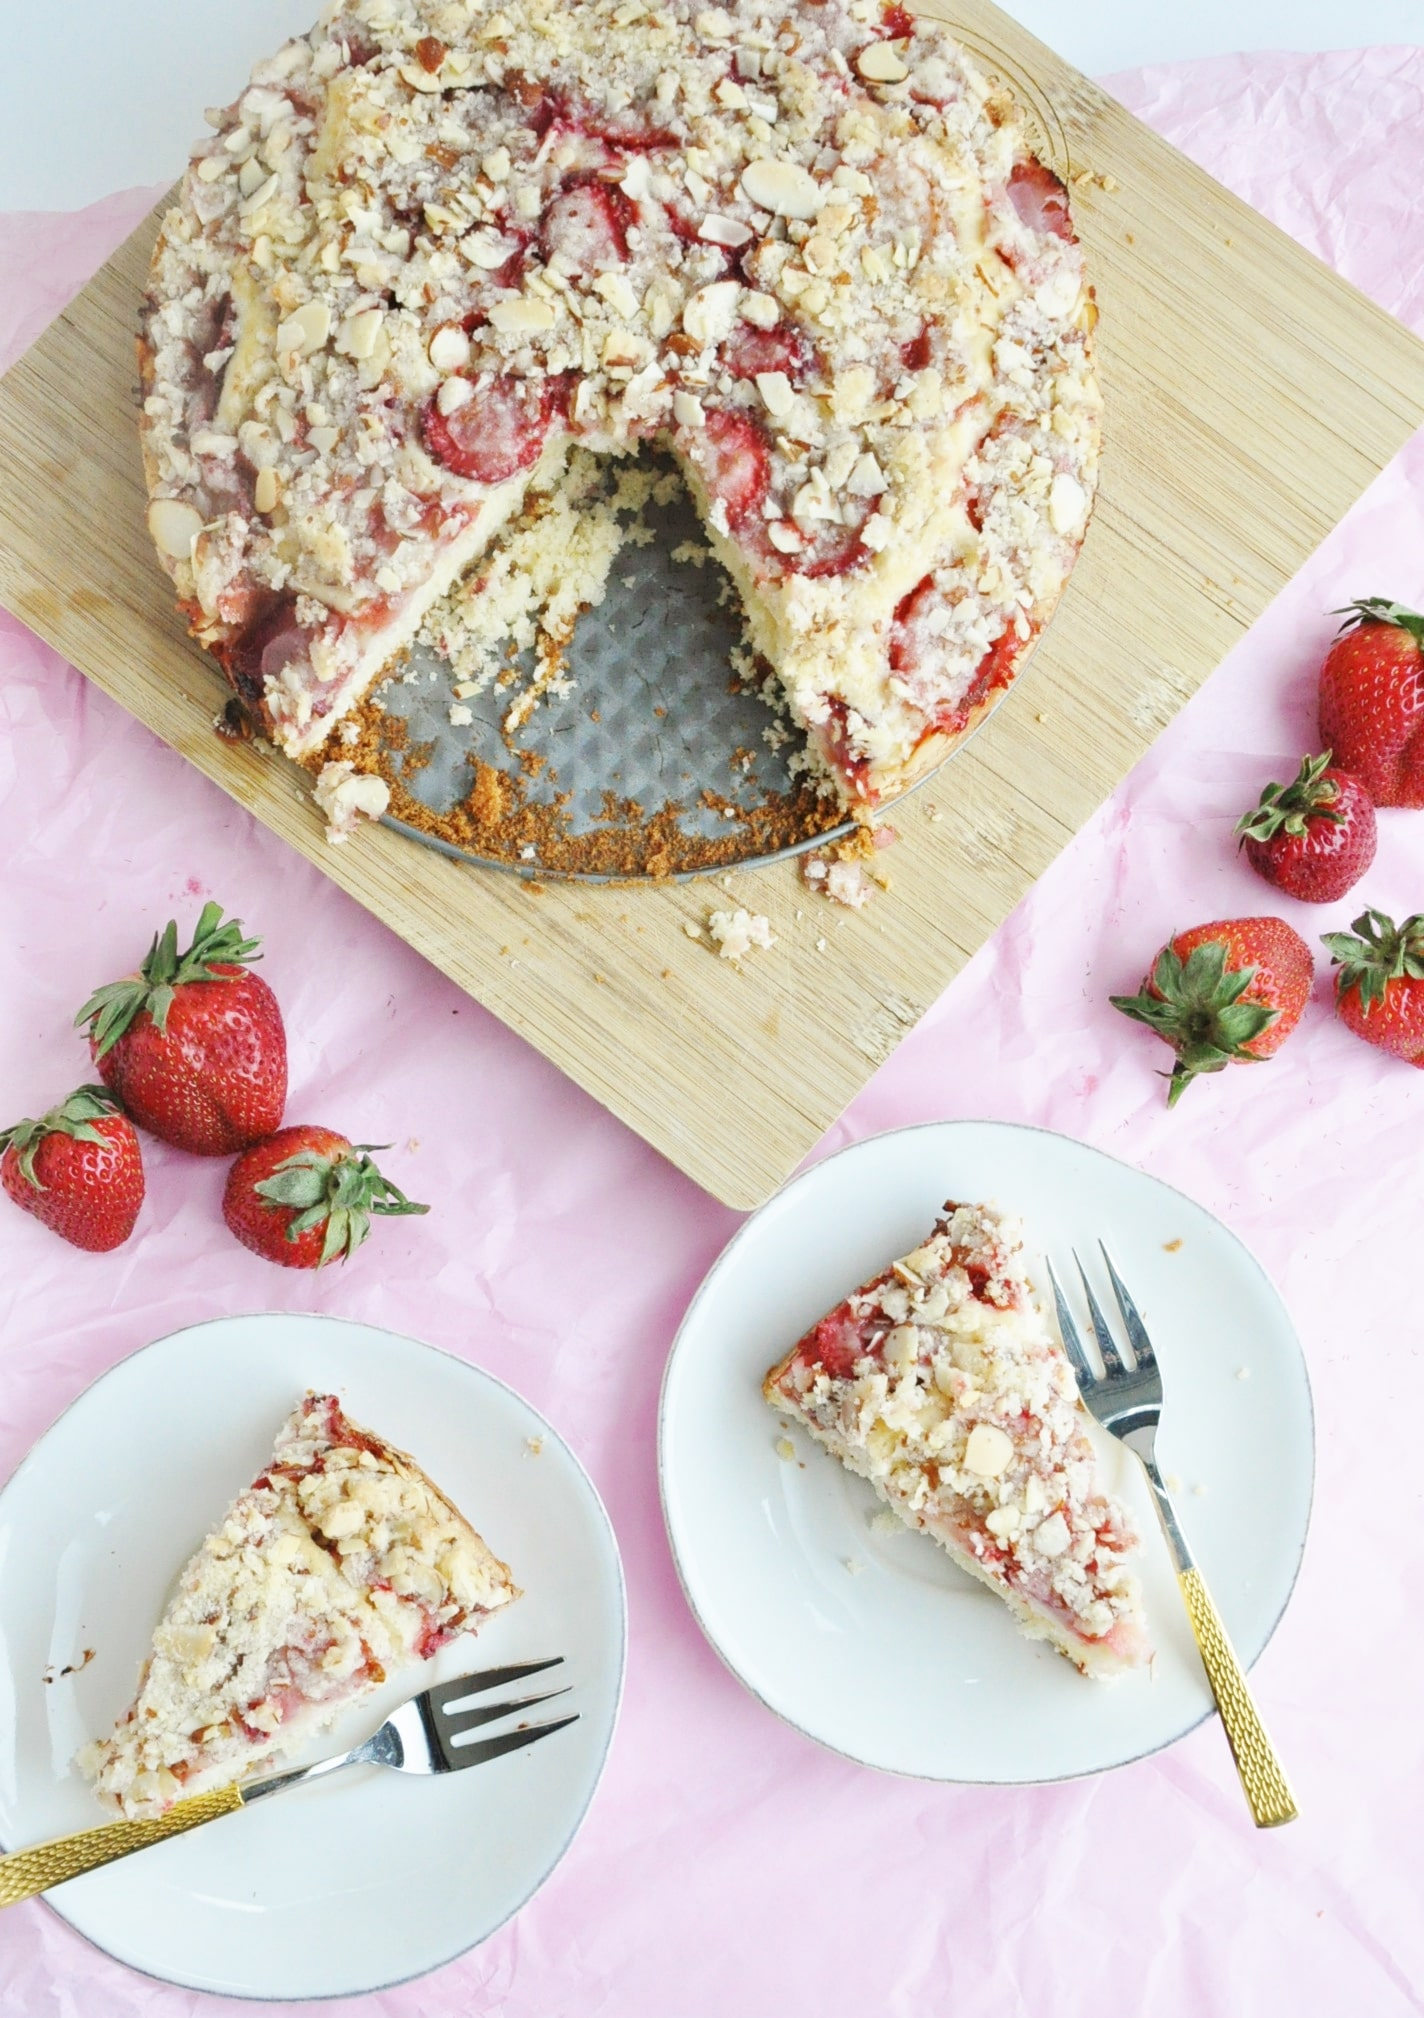 Strawberry Almond Crumb Cake